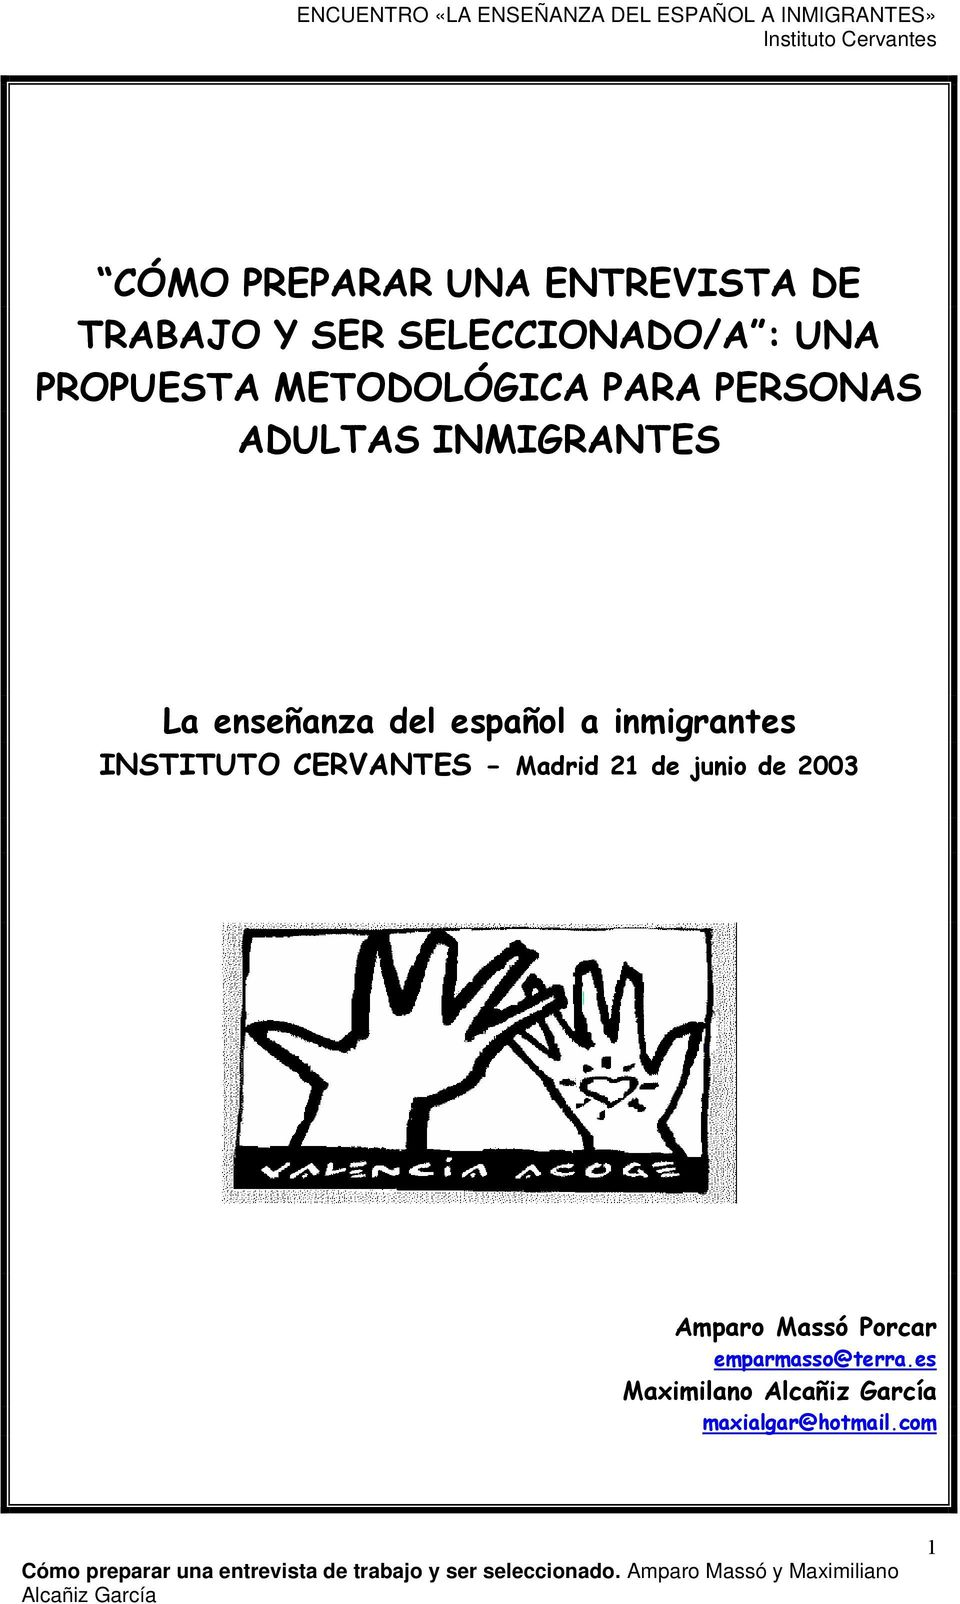 del español a inmigrantes INSTITUTO CERVANTES - Madrid 21 de junio de